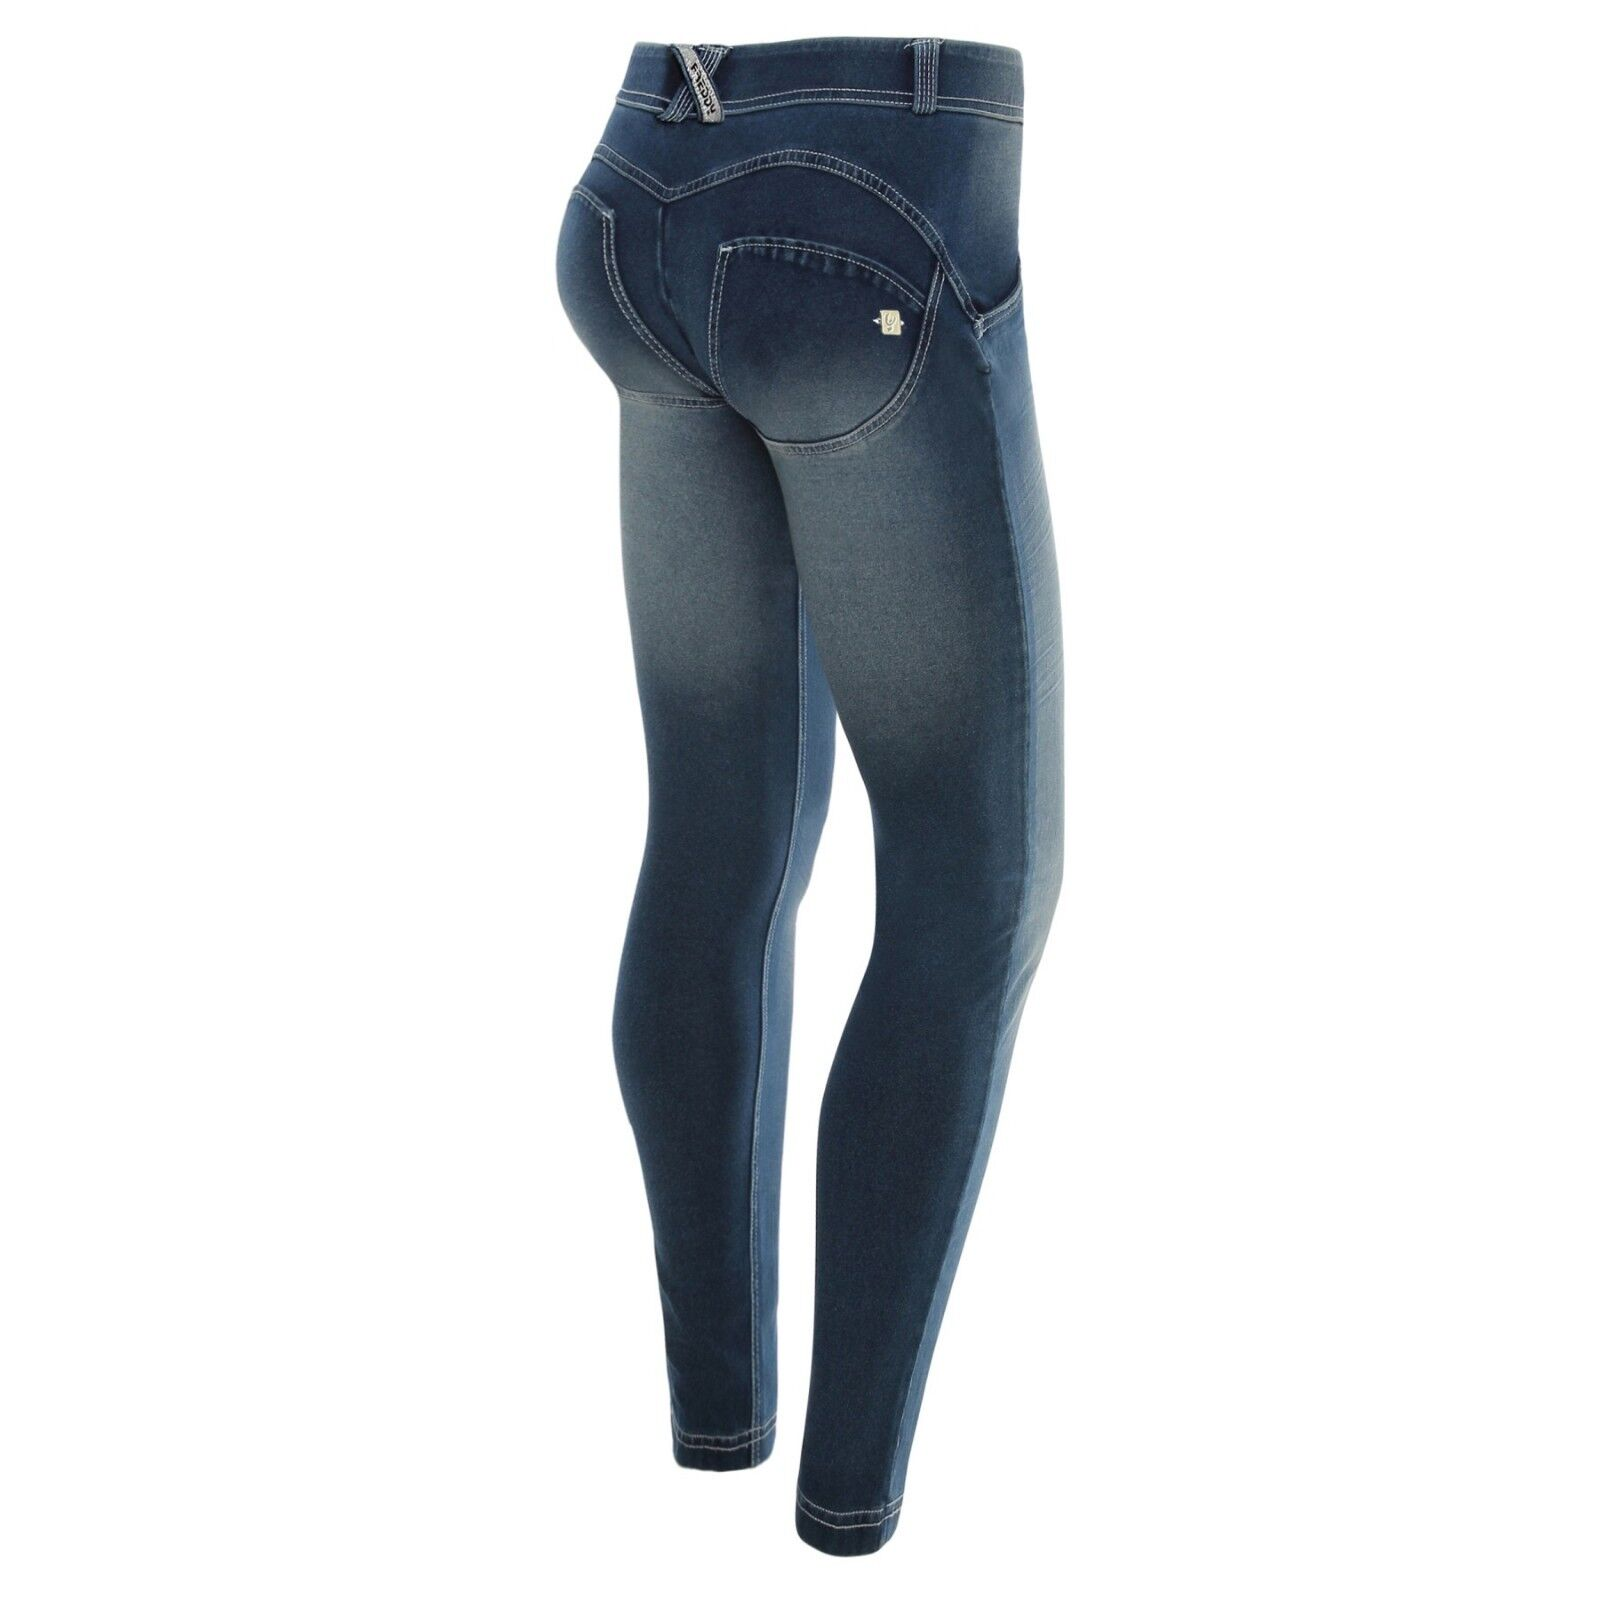 SCONTO 20% FREDDY WR.UP JEANS XS S M L XL PANTALONE LUNGO PUSH UP WRUP1RA05E